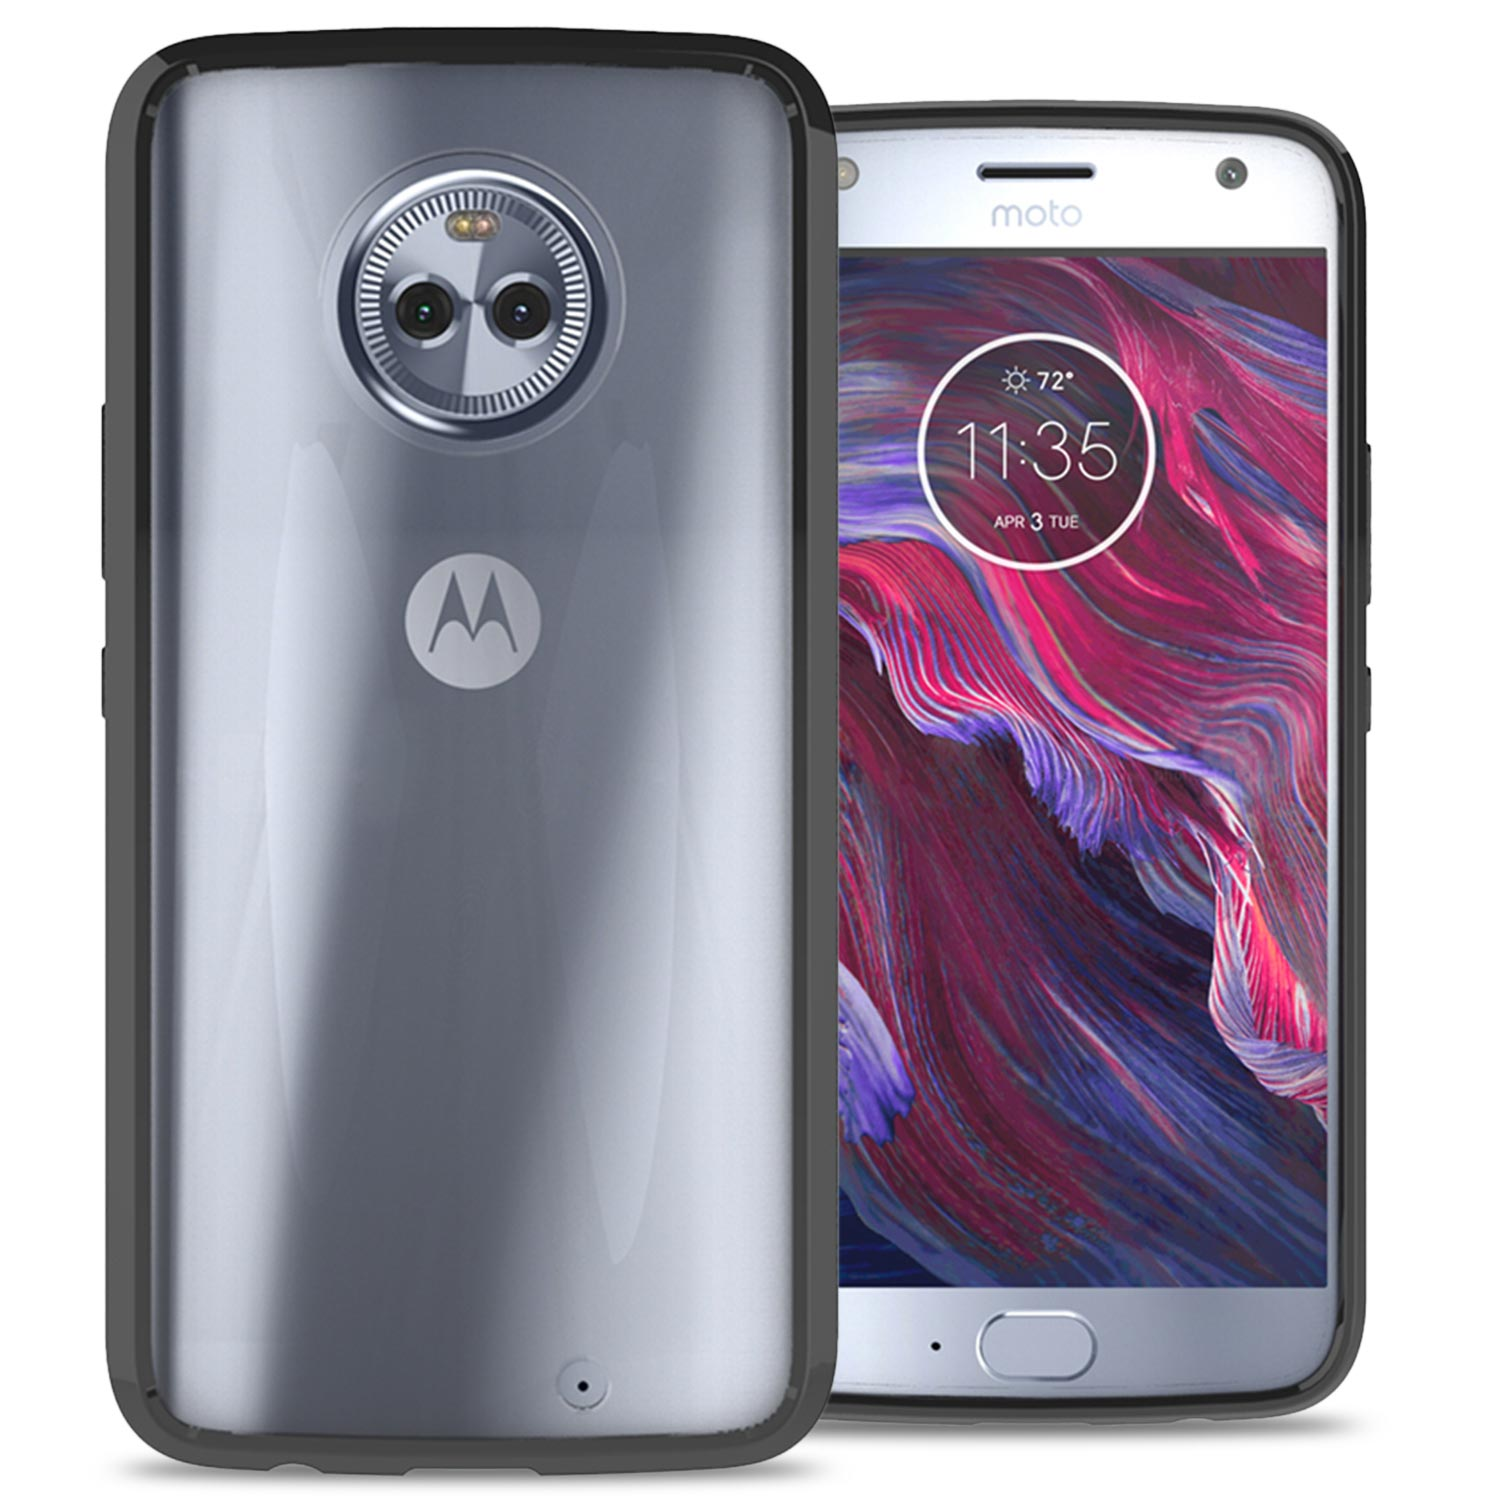 low priced a7abd 127fc CoverON Motorola Moto X4 (Moto X 4th Gen 2017) Case, ClearGuard Series  Clear Hard Phone Cover